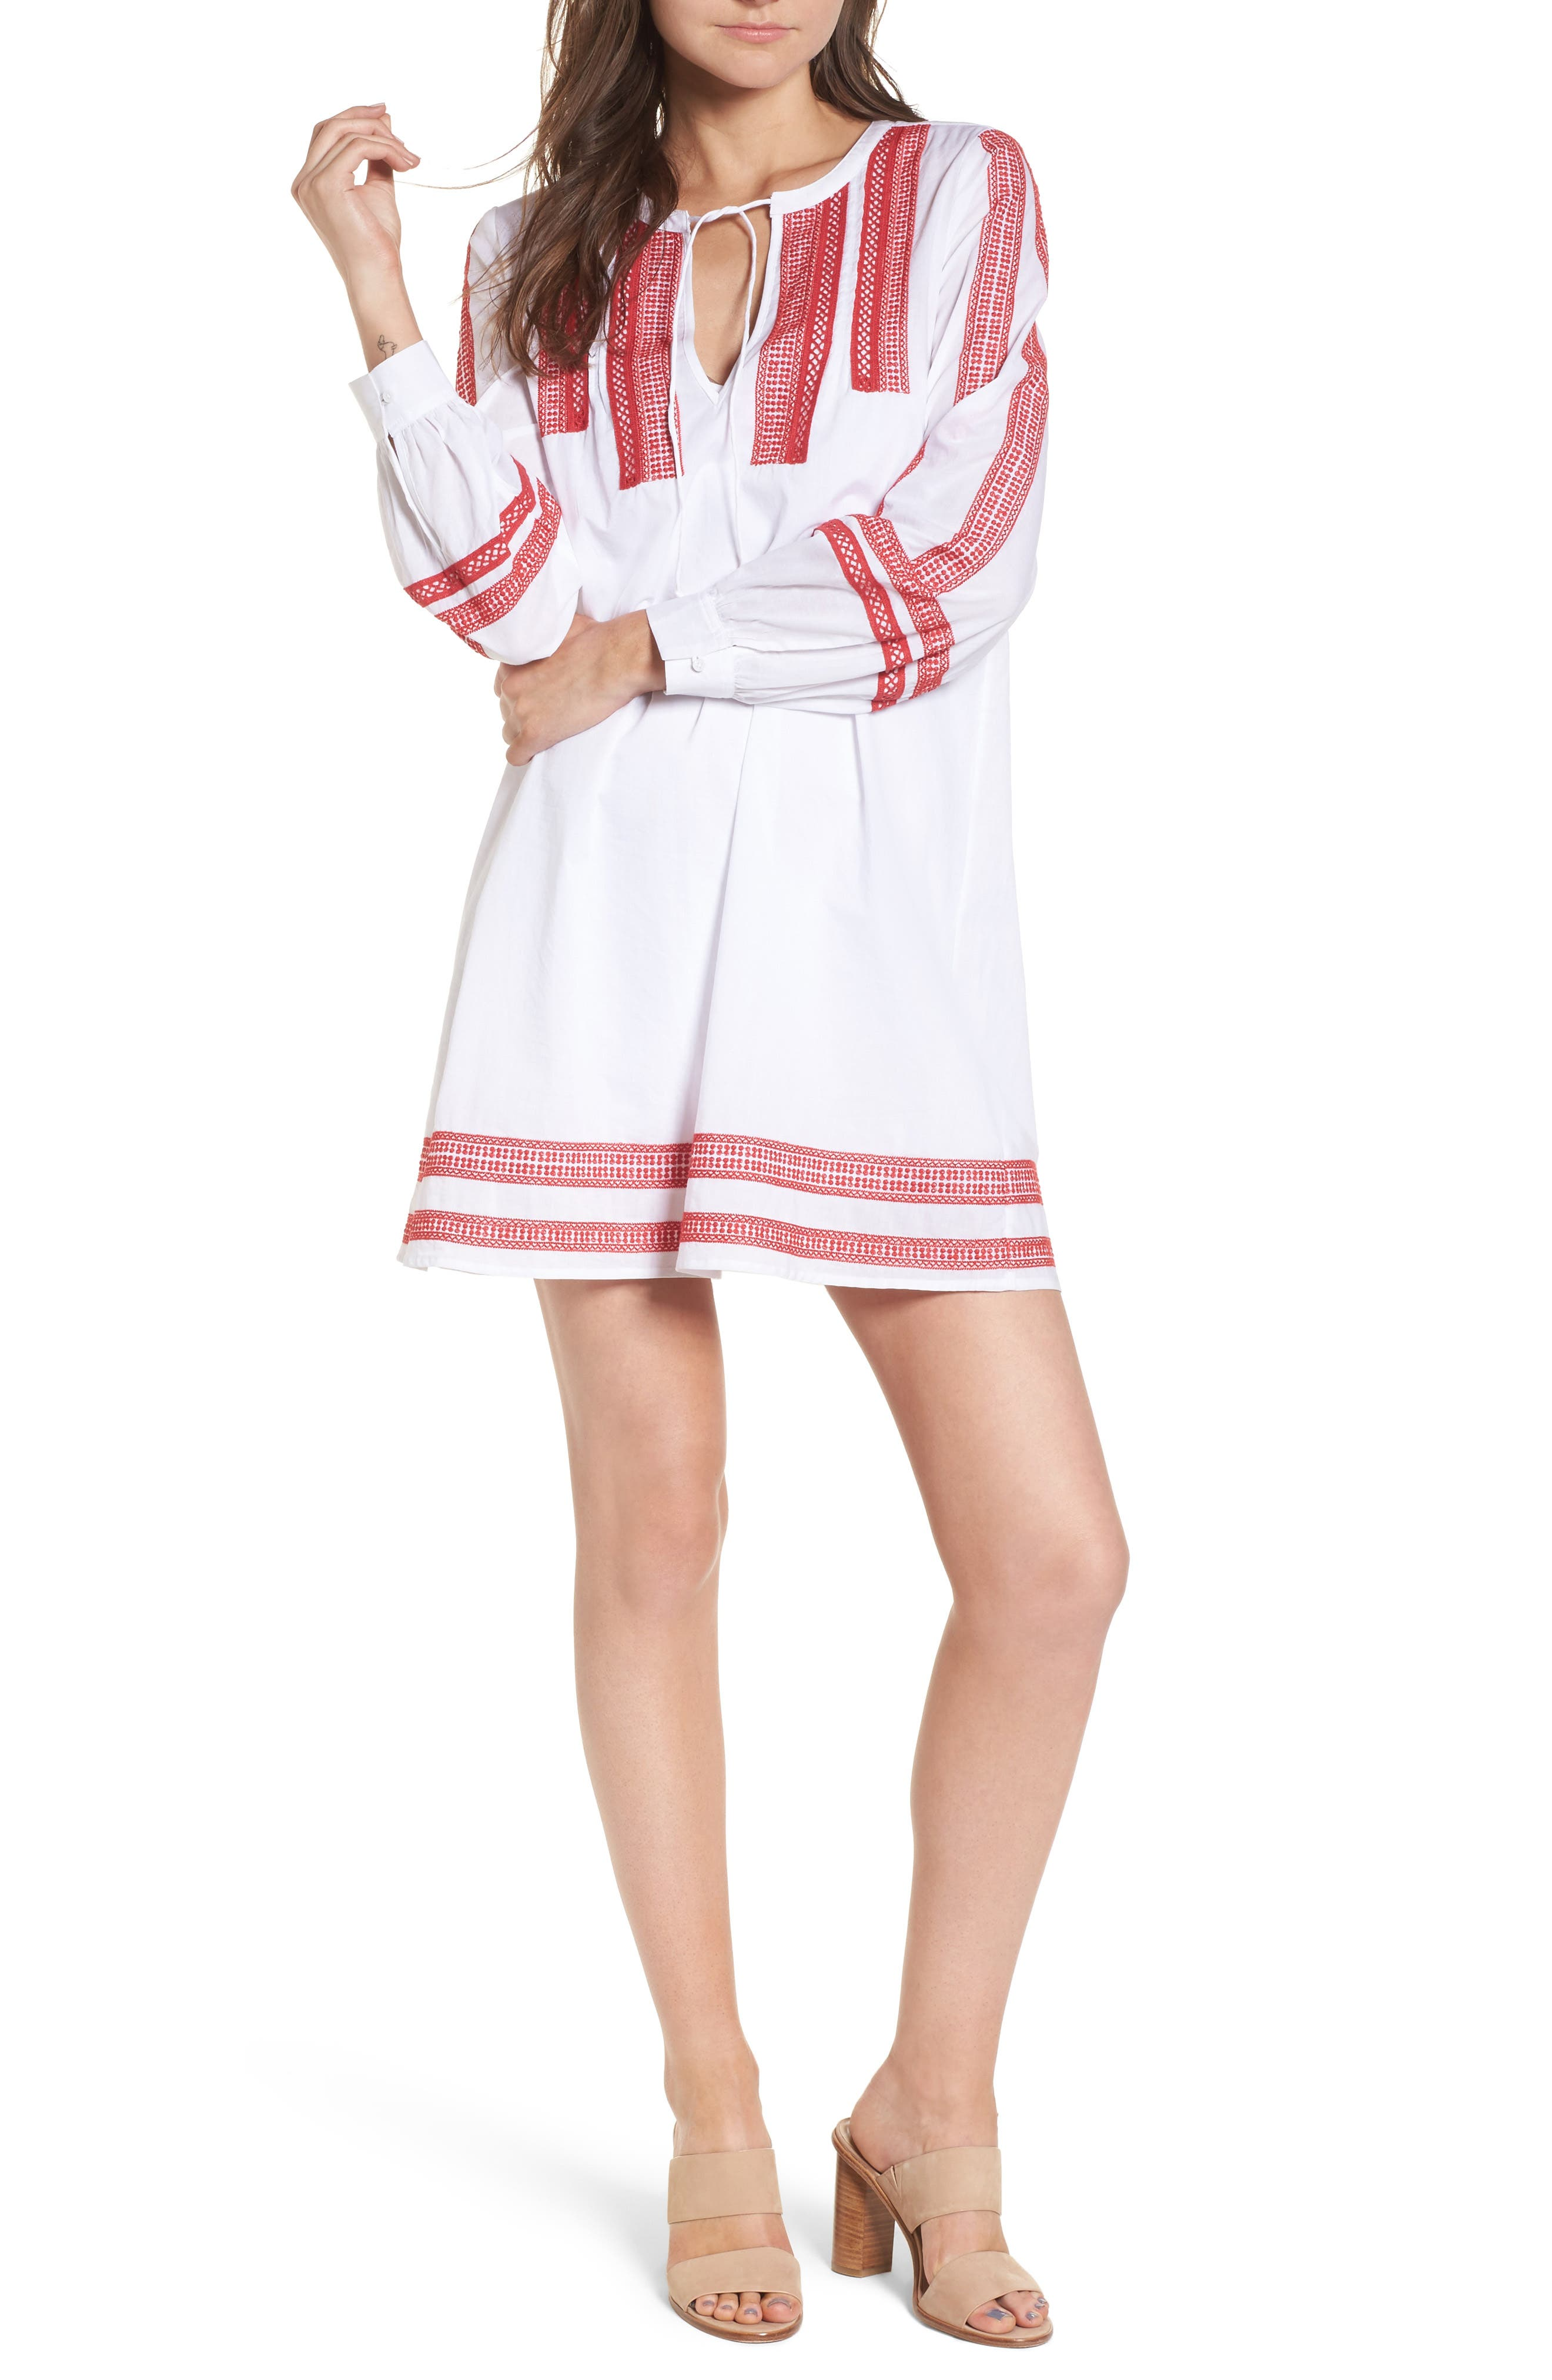 Embroidered Lace Minidress,                             Main thumbnail 1, color,                             White Red Lipstick Embroidery